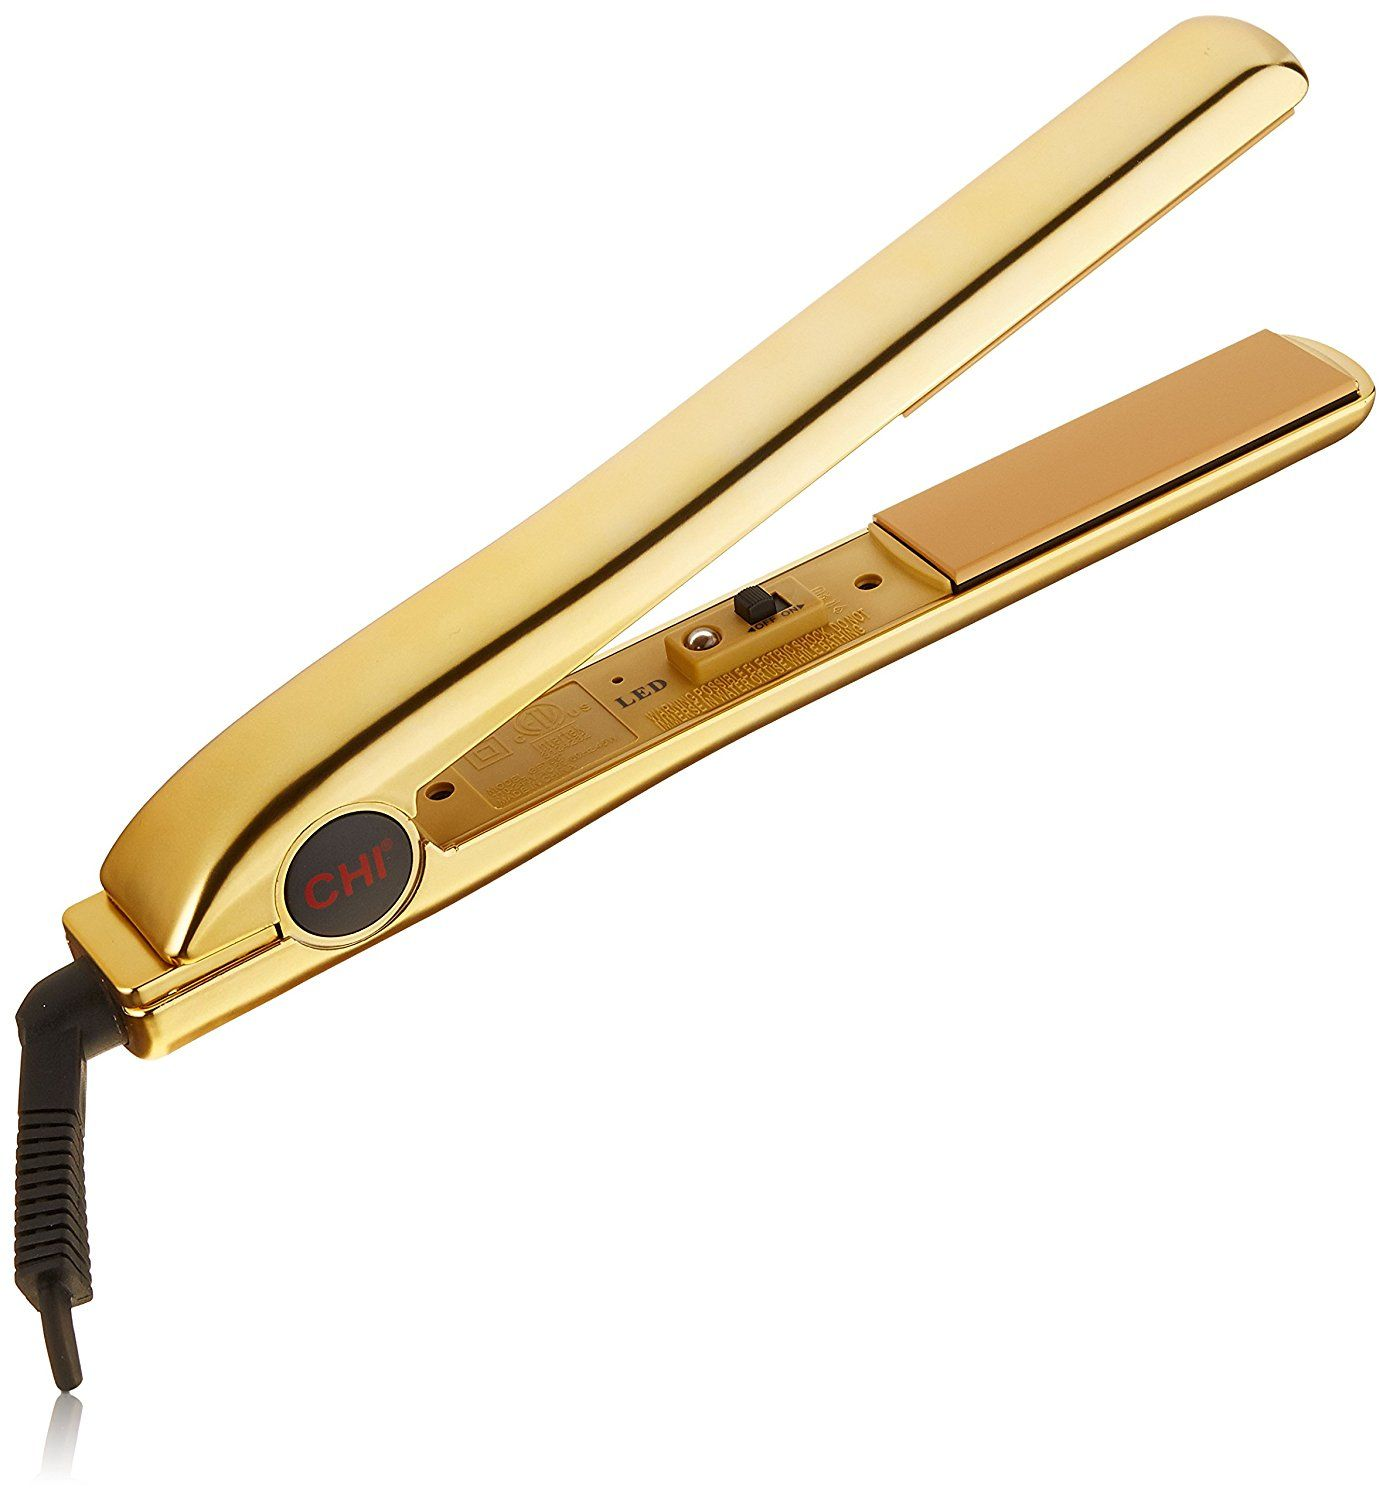 CHI PRO  Ceramic Flat Iron in Keratin Gold with Free Gifts  Ionic